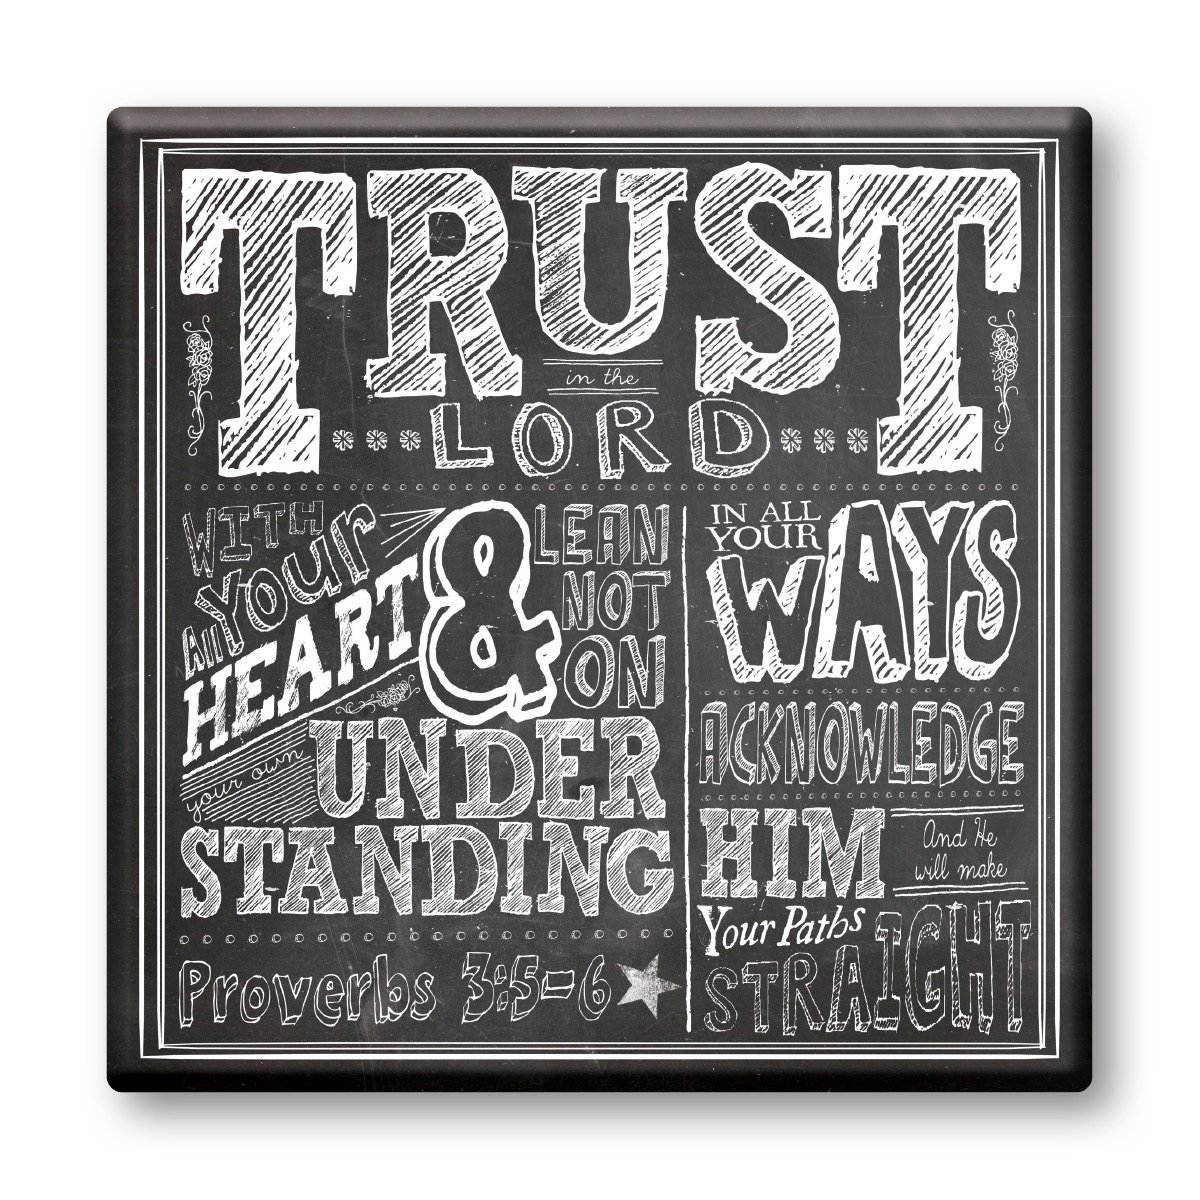 Trust, Stretched Canvas Art 12x12